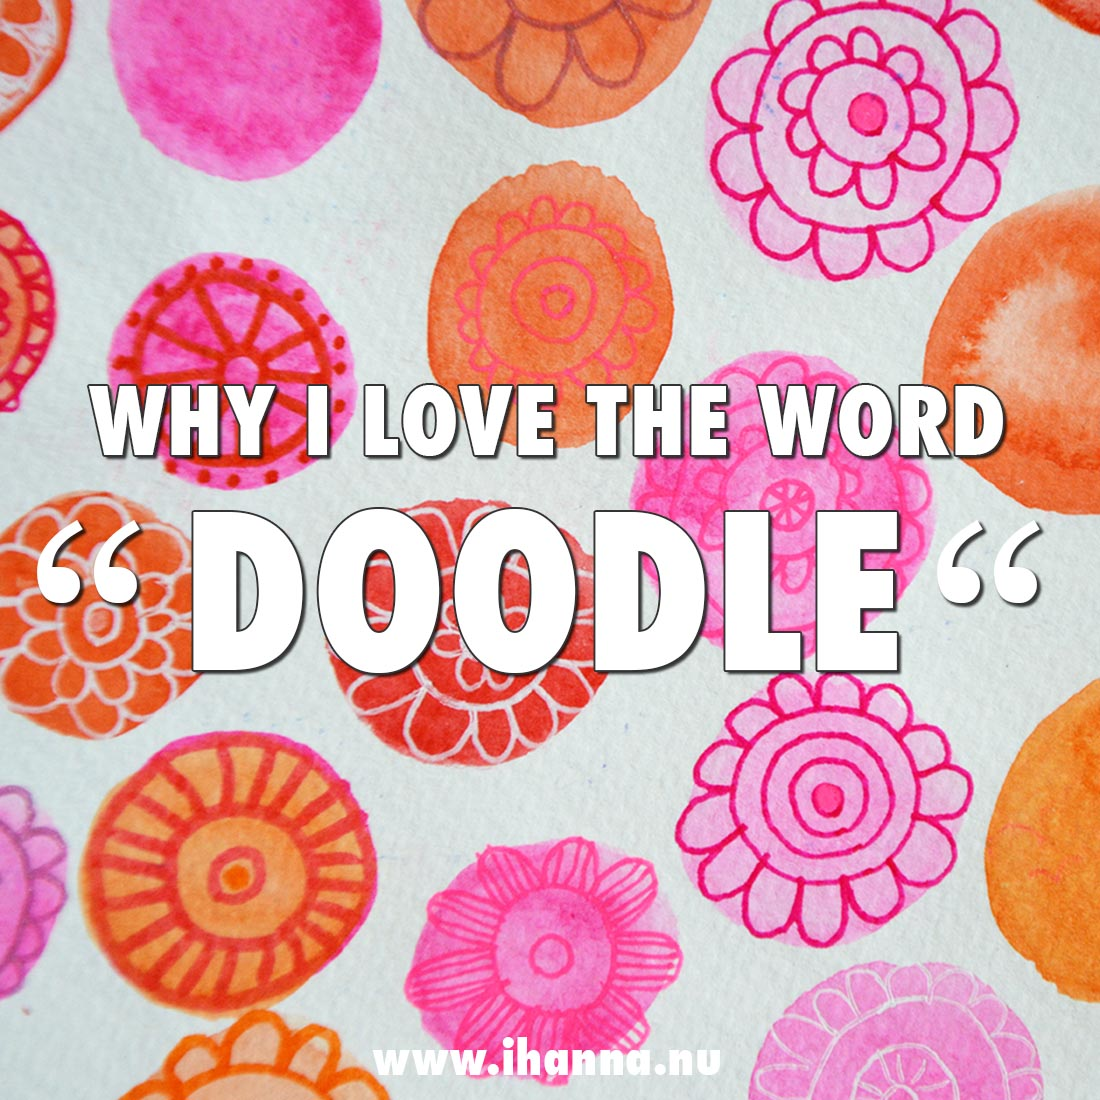 I love the word Doodle more than Drawing